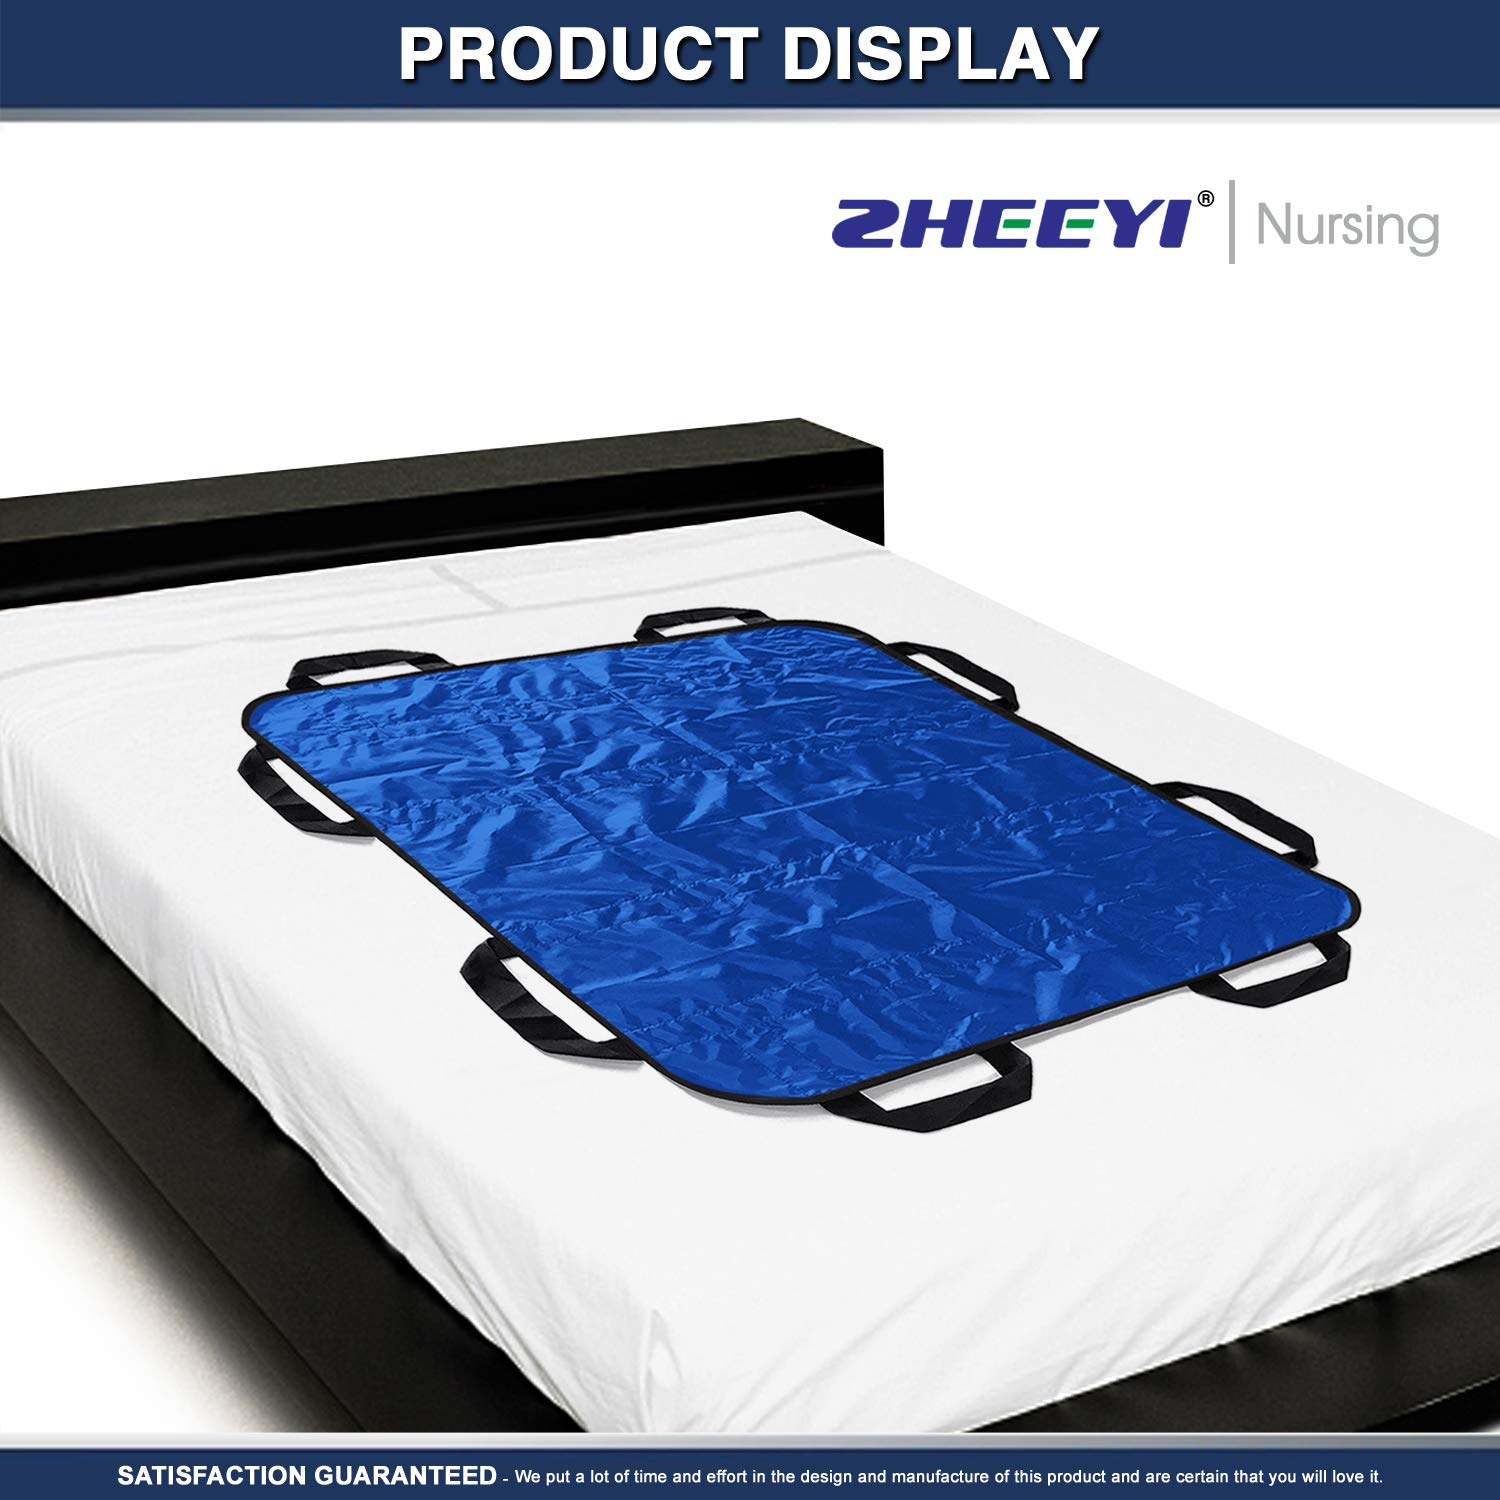 """Multipurpose 48"""" x 40"""" Positioning Bed Pad with Reinforced Handles by ZHEEYI - Reusable & Washable Patient Sheet for Turning, Lifting & Repositioning - Double-Sided Nylon Fabric, Blue by ZHEEYI (Image #2)"""